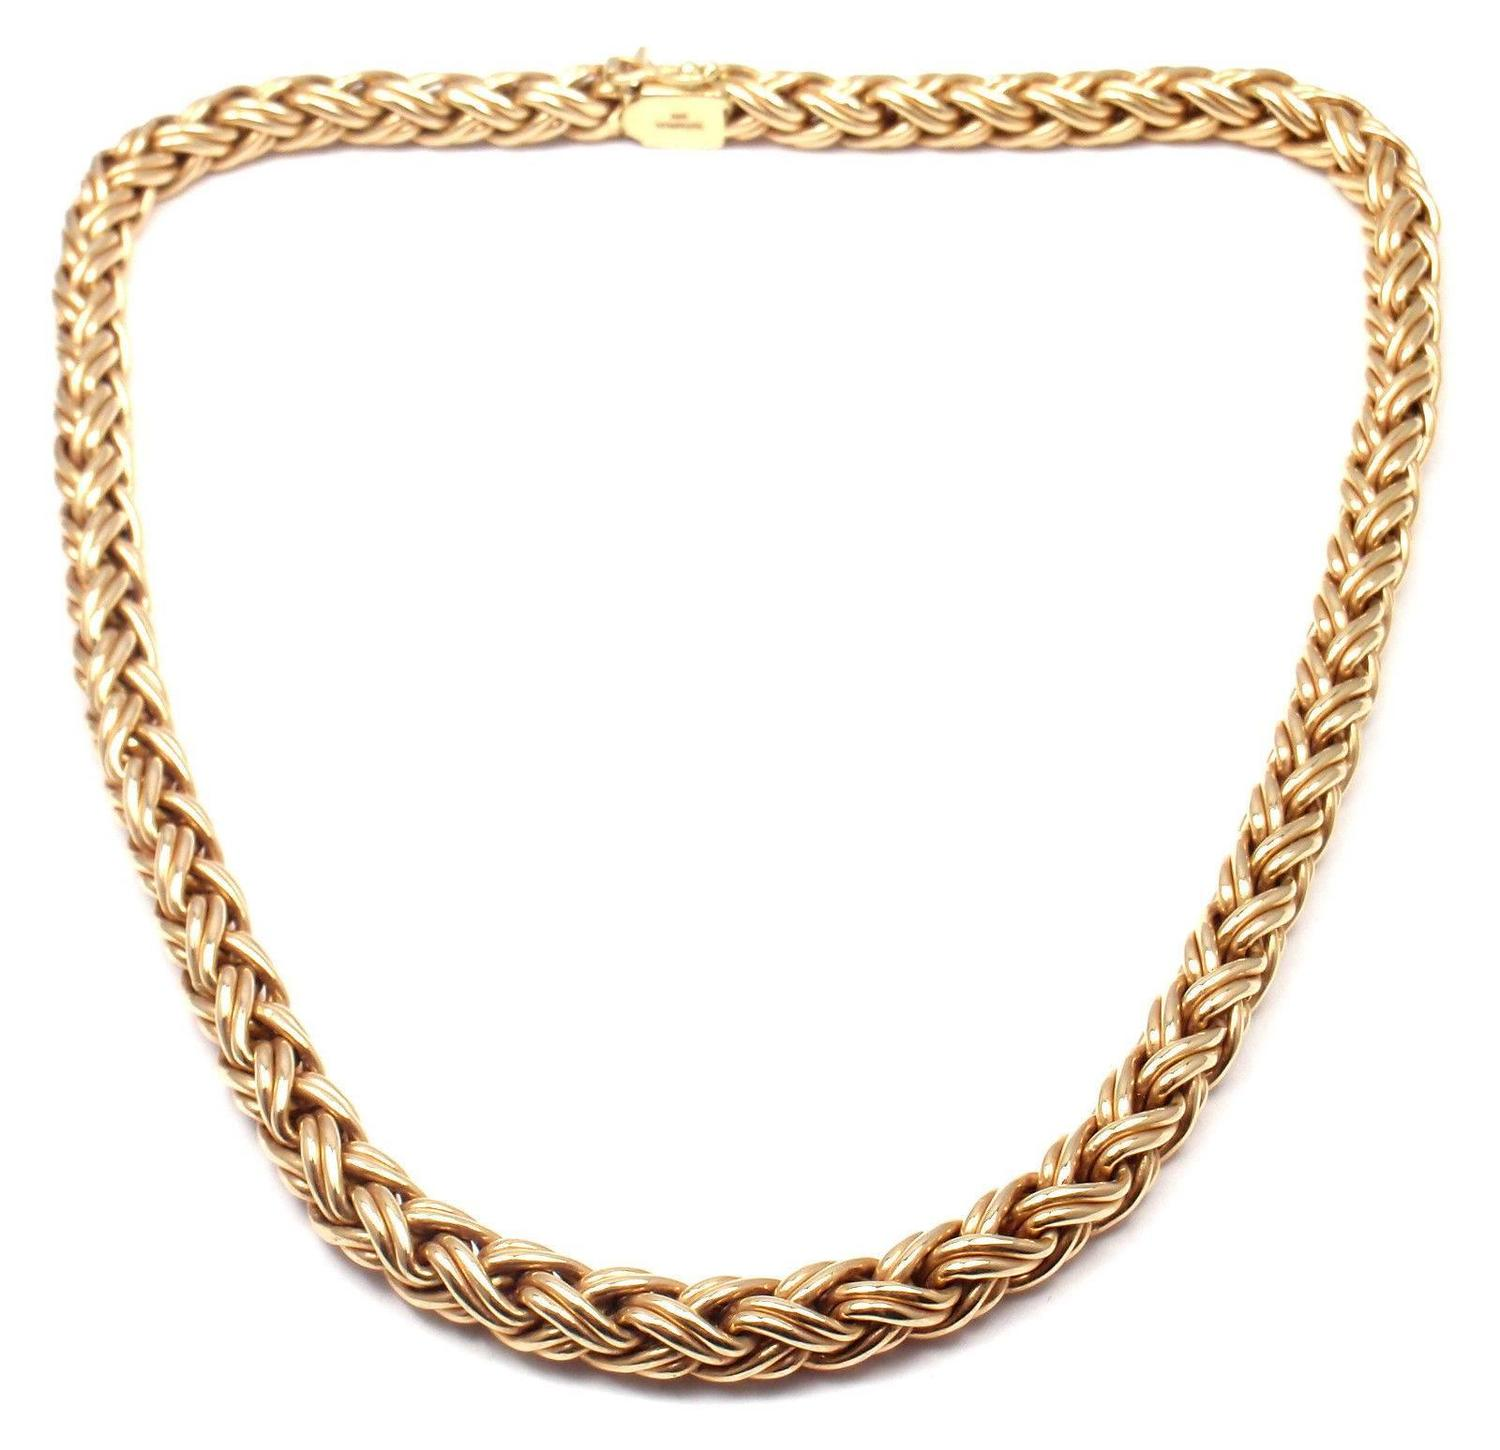 Basket Weaving Jewelry : Tiffany and co basket weave gold necklace for sale at stdibs